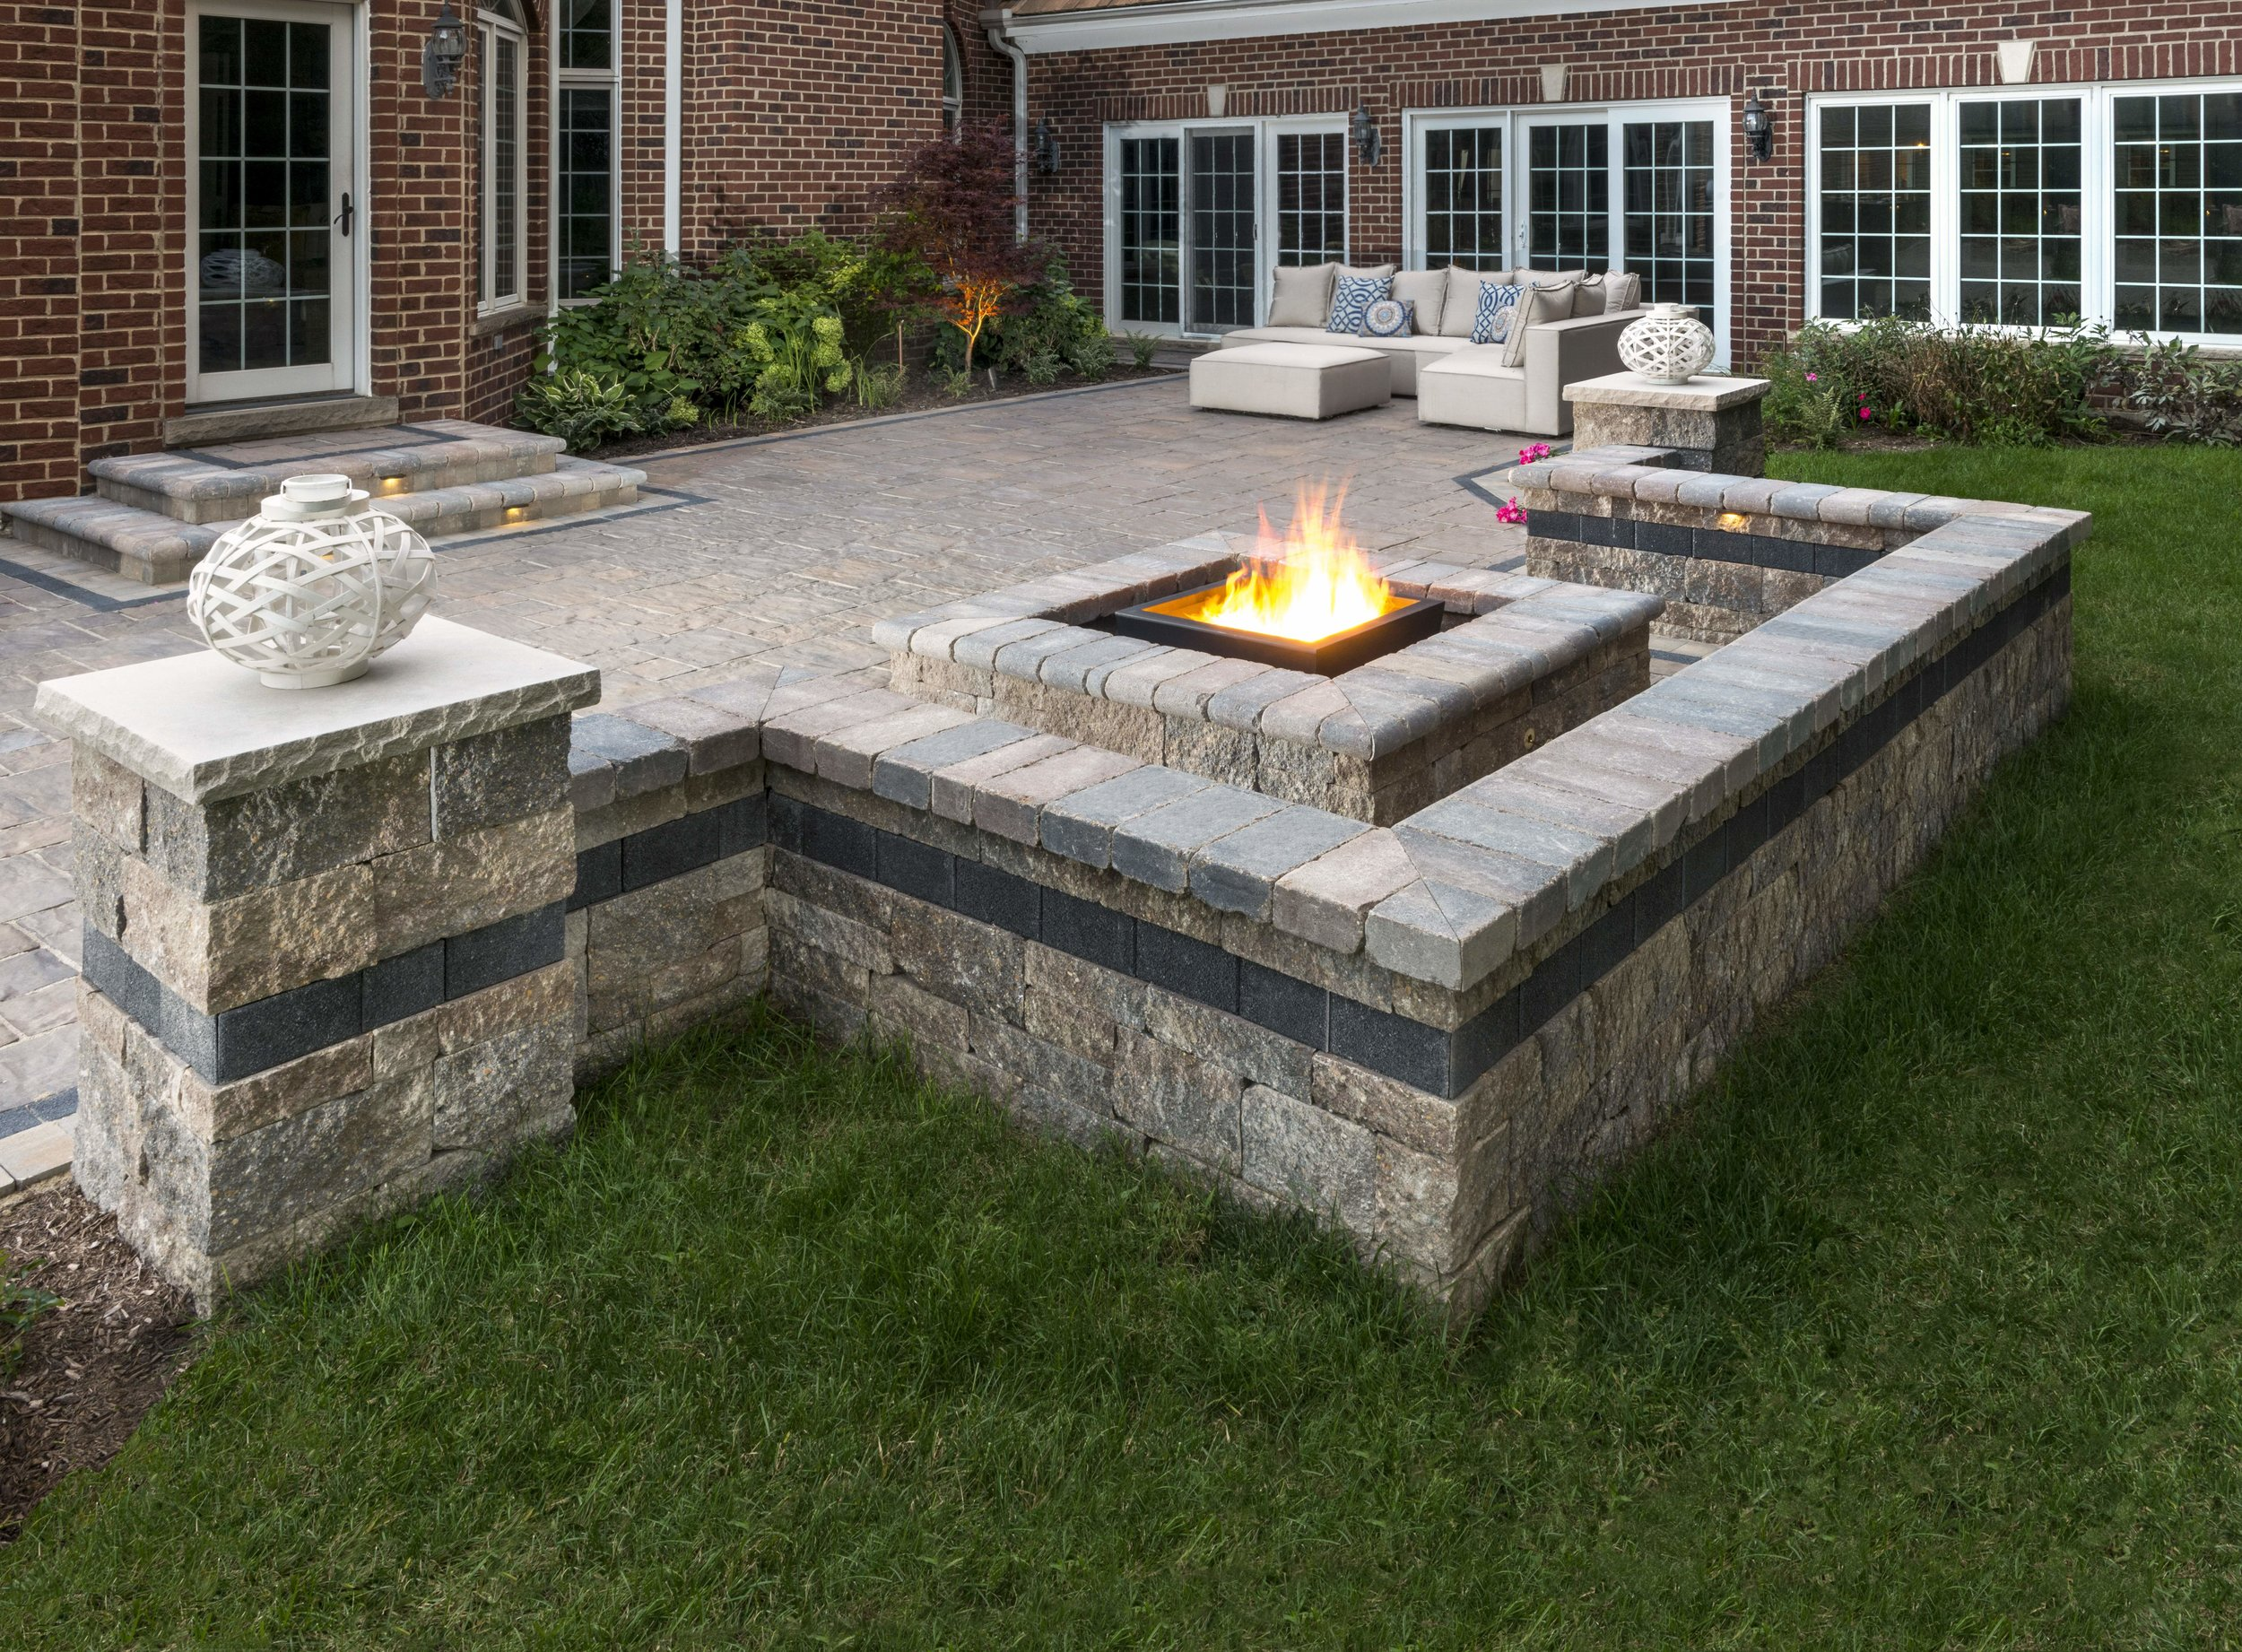 Enclosing a Patio with Sitting Walls in State College, PA